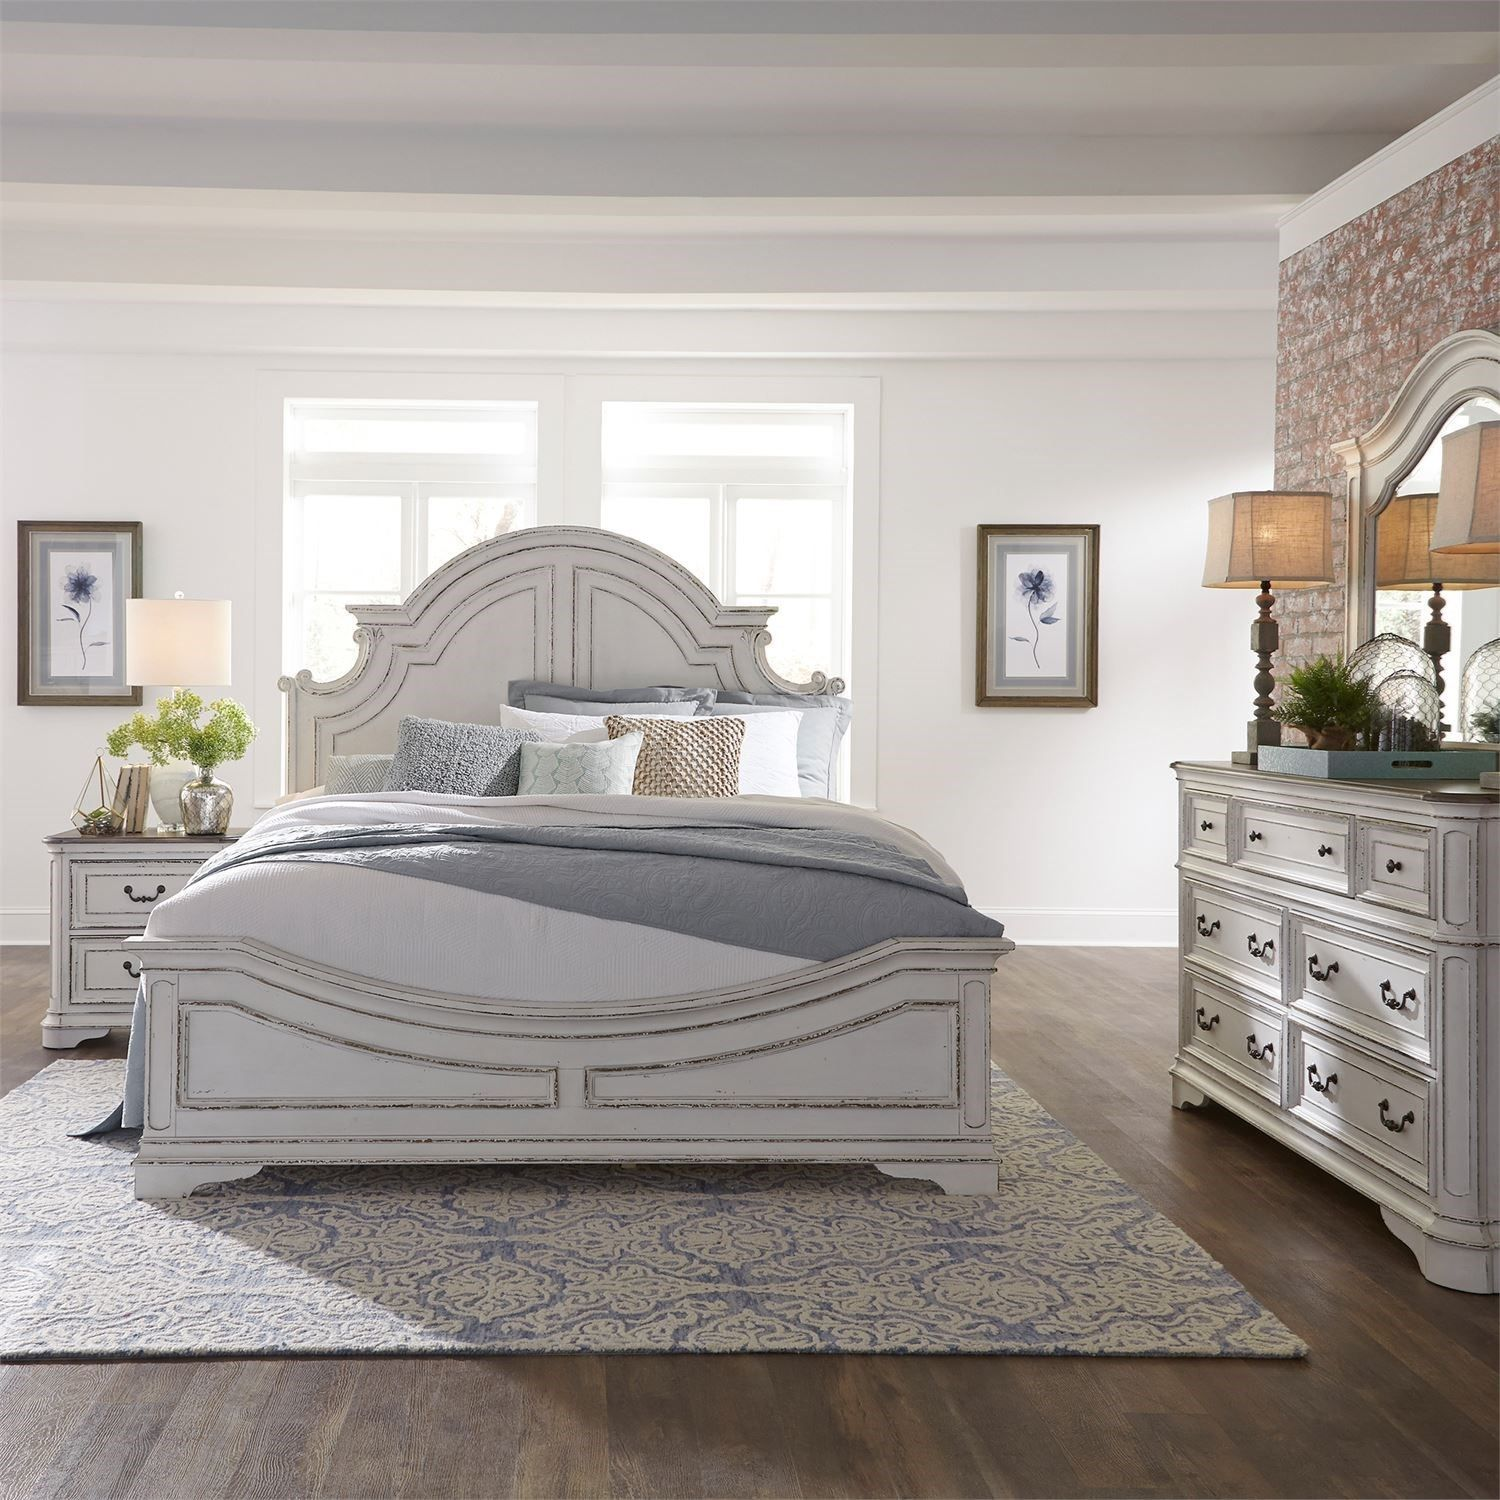 Magnolia Manor King Bedroom Group By Liberty Furniture At Hudson S Furniture White Paneling Liberty Furniture White Panel Bedroom Set